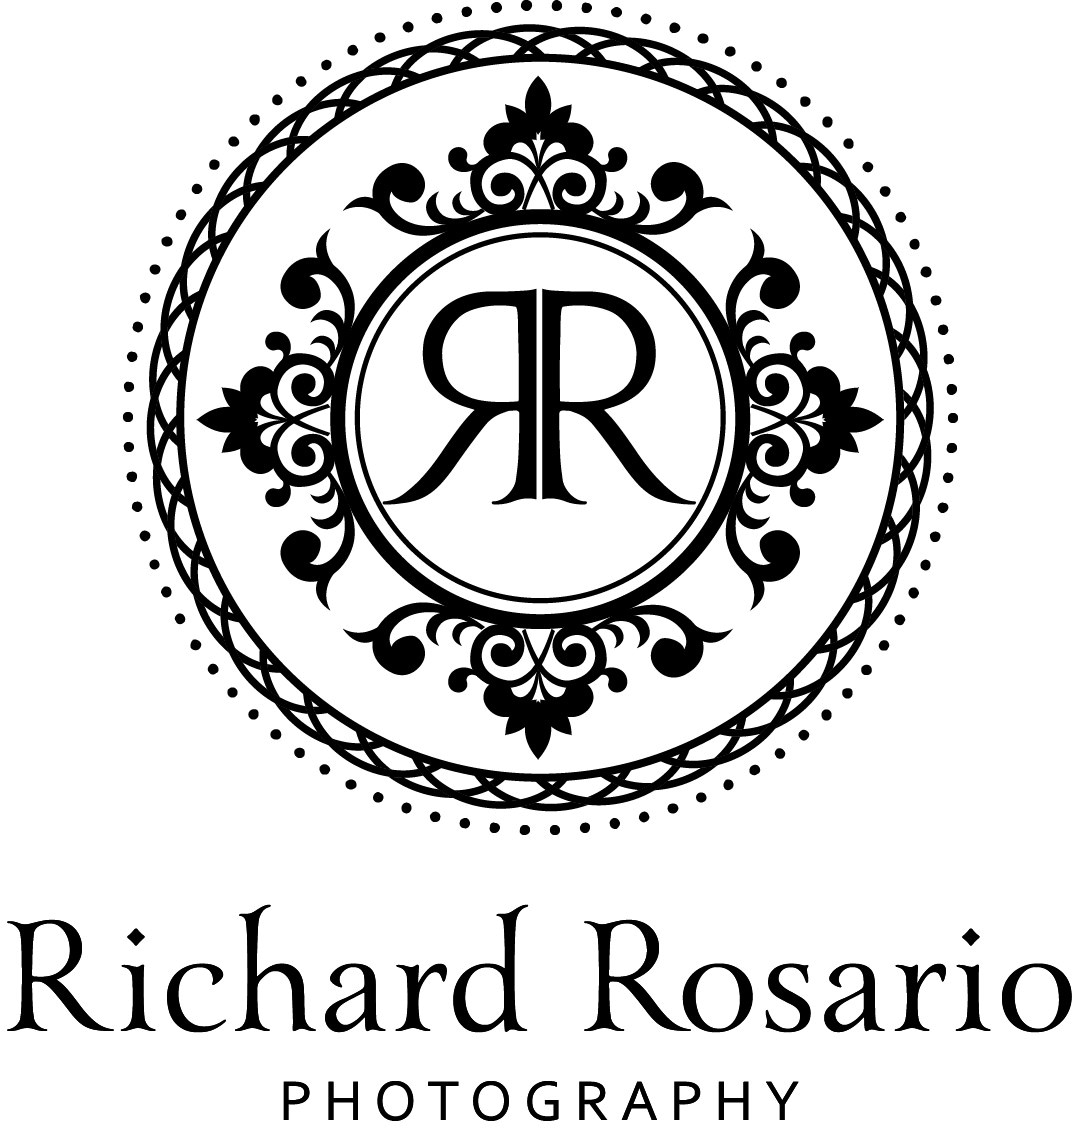 Richard Rosario Photography LLC